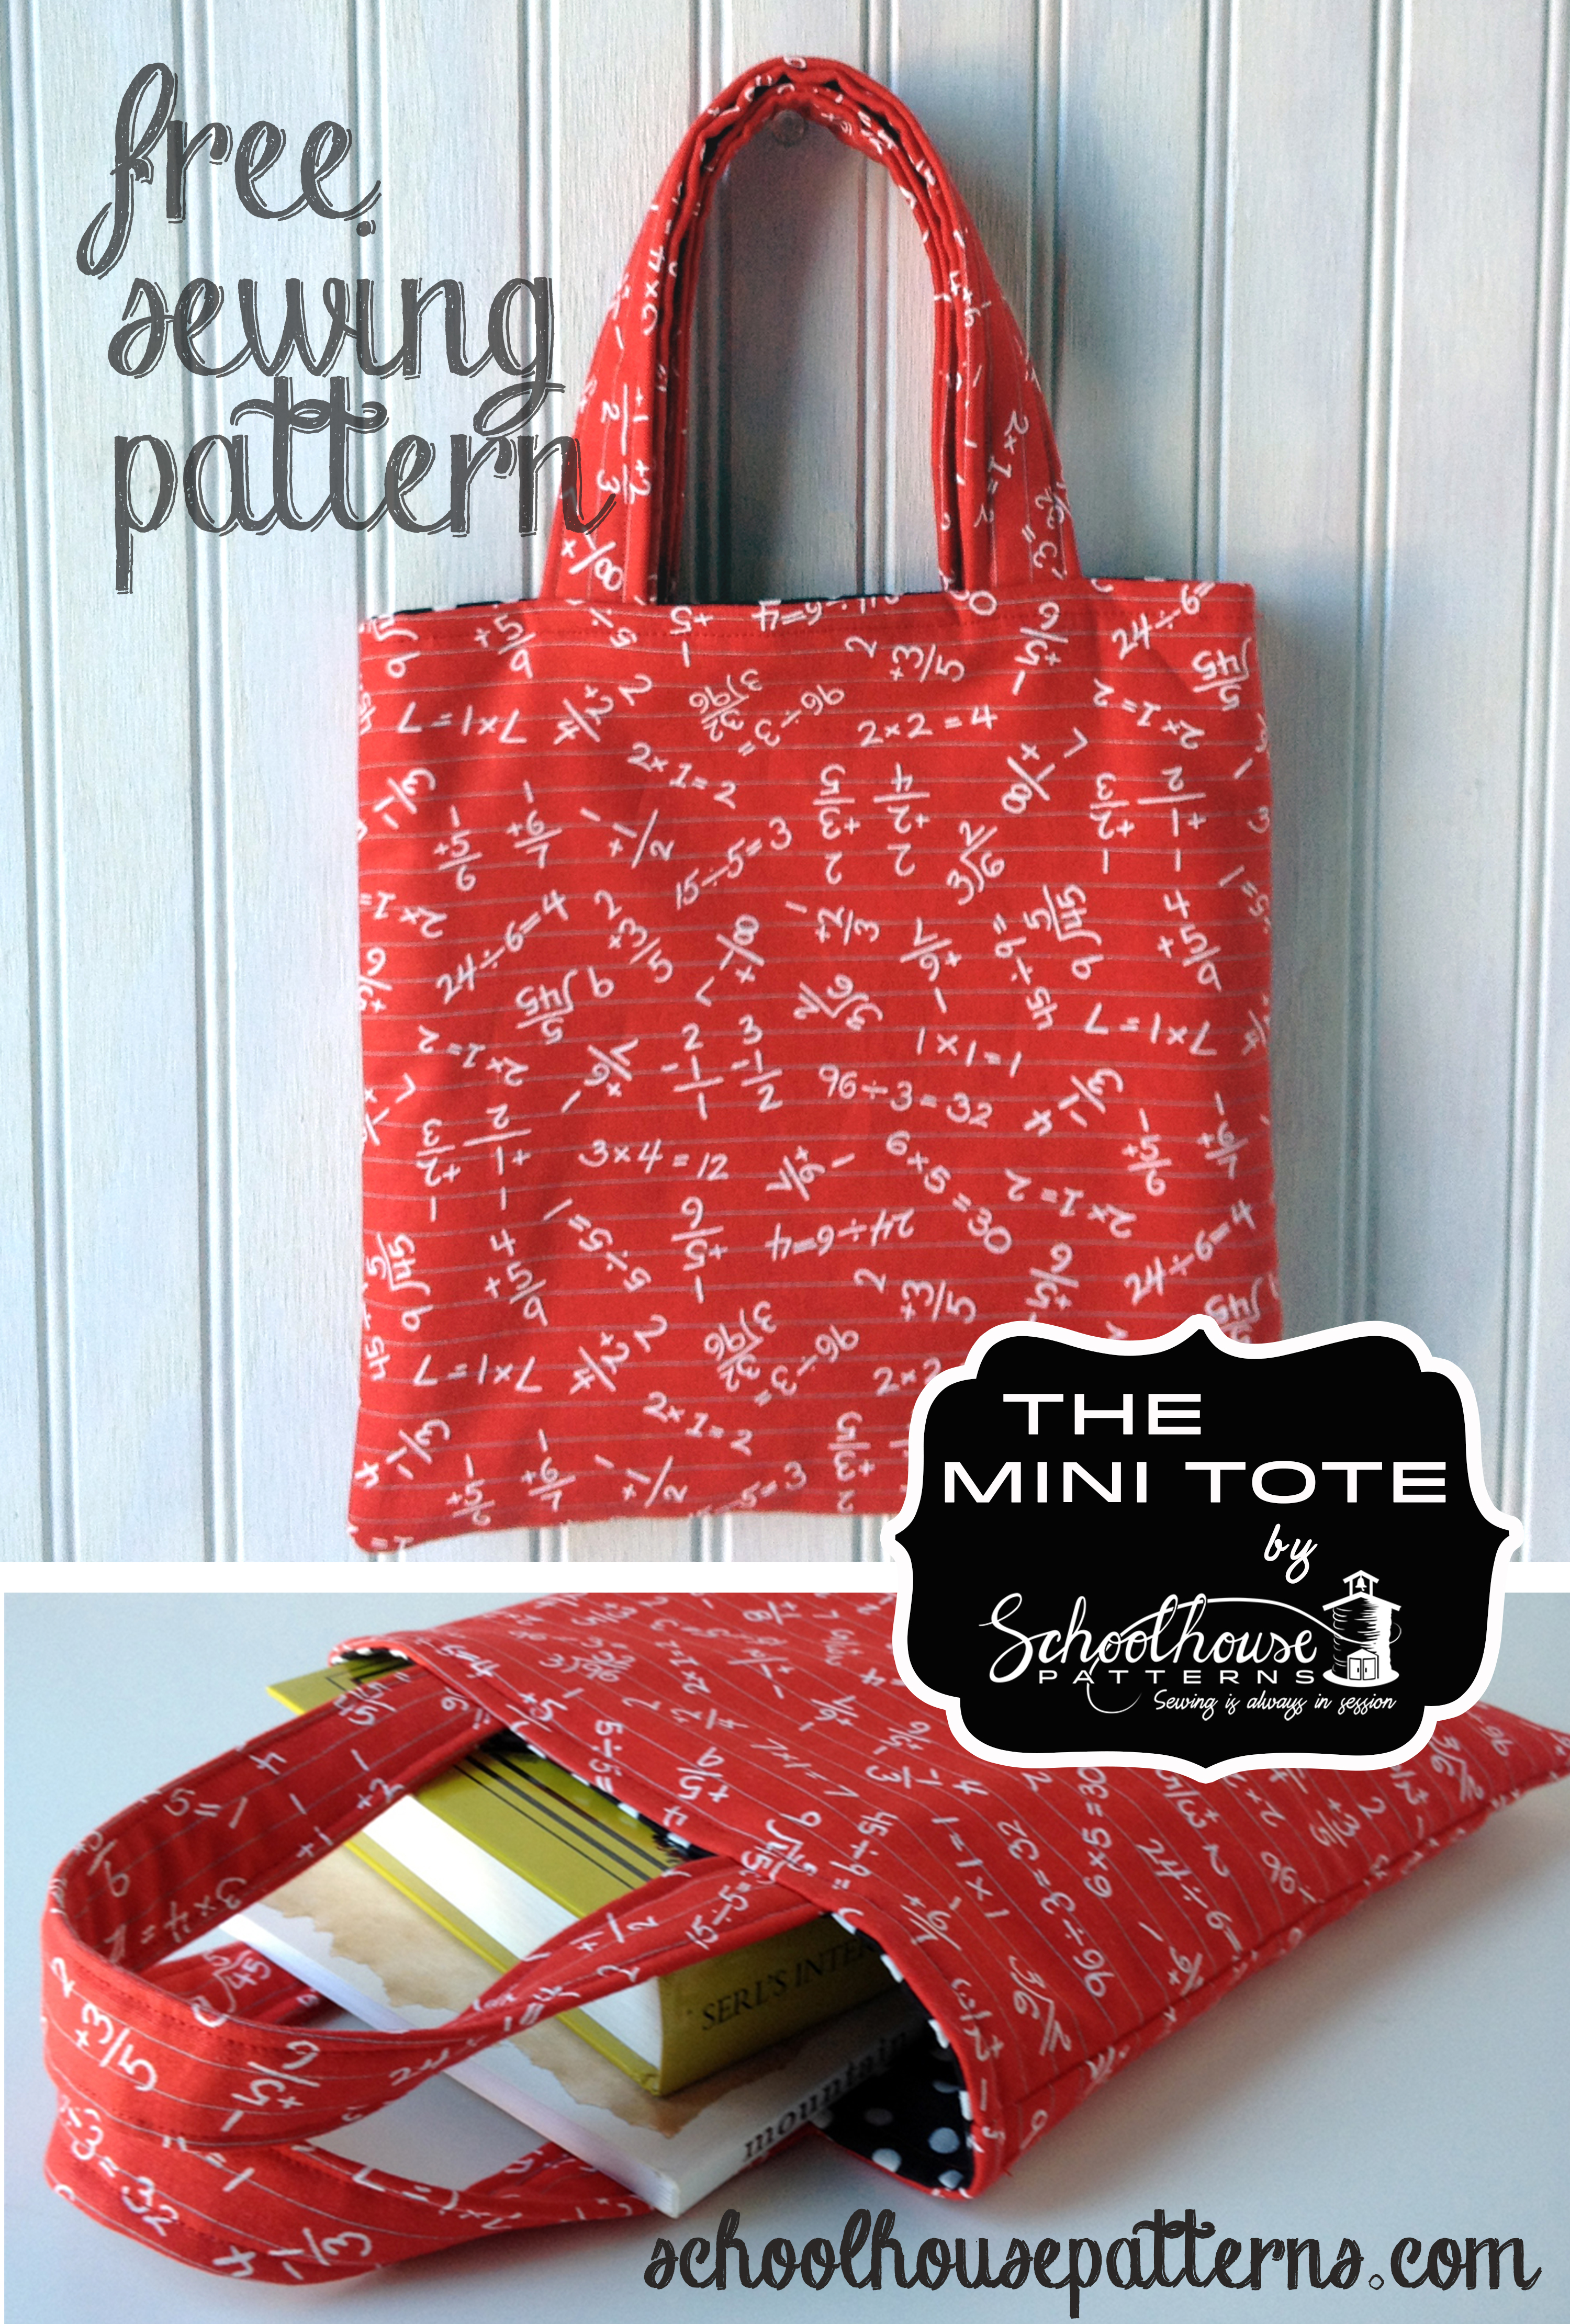 The Mini Tote Schoolhouse Patterns